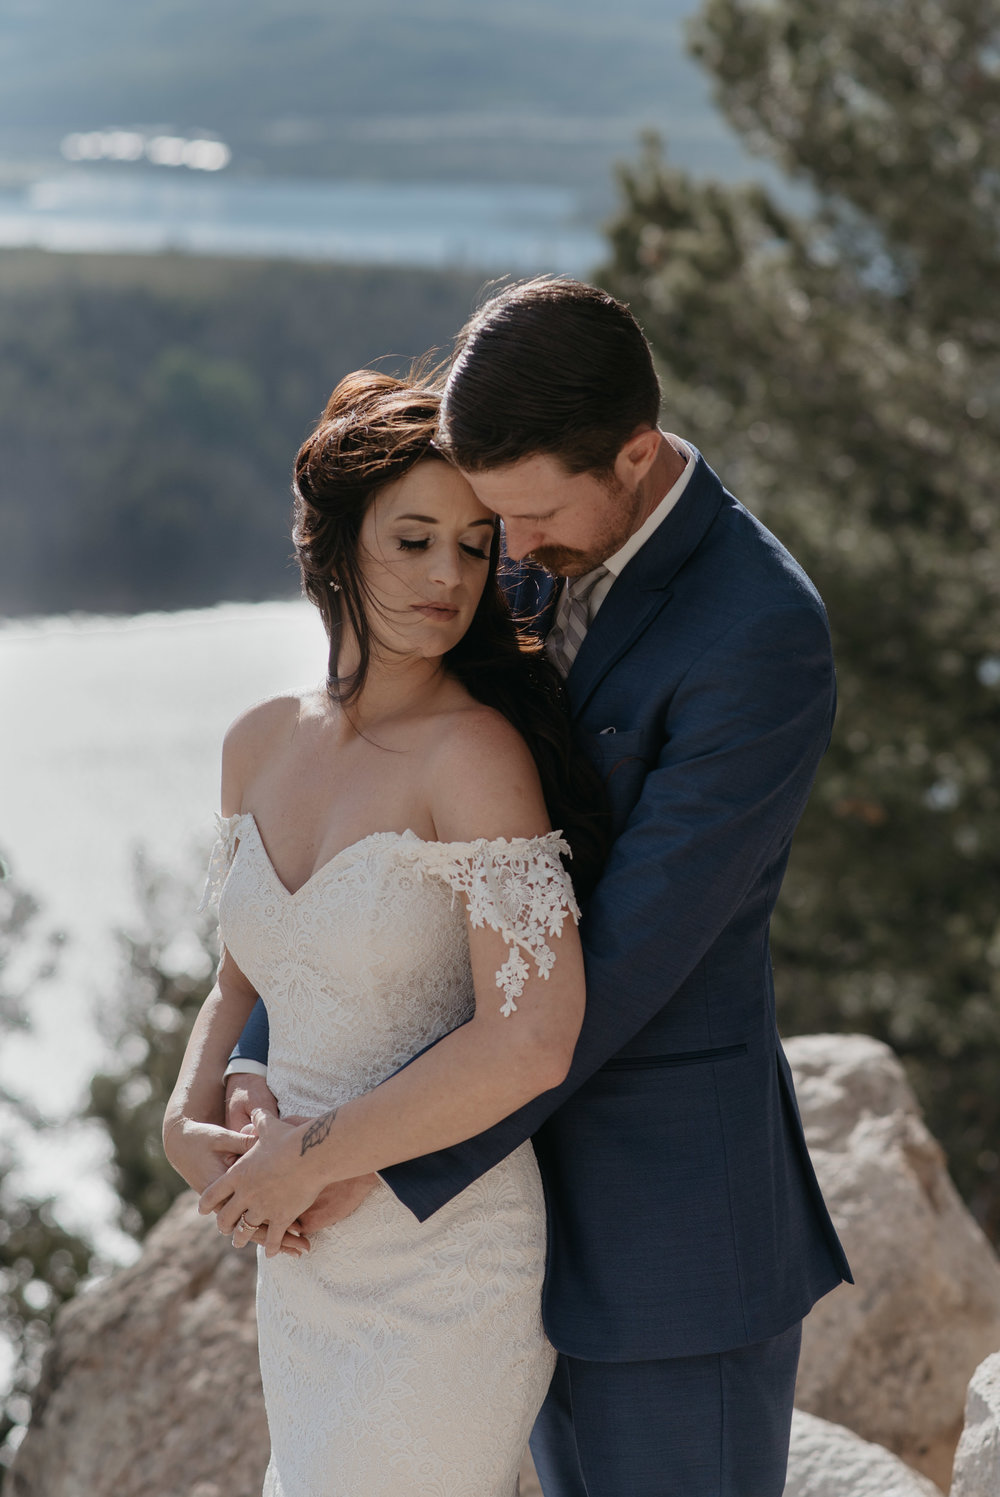 Intimate Colorado wedding at Sapphire Point. Colorado wedding and elopement photographer.